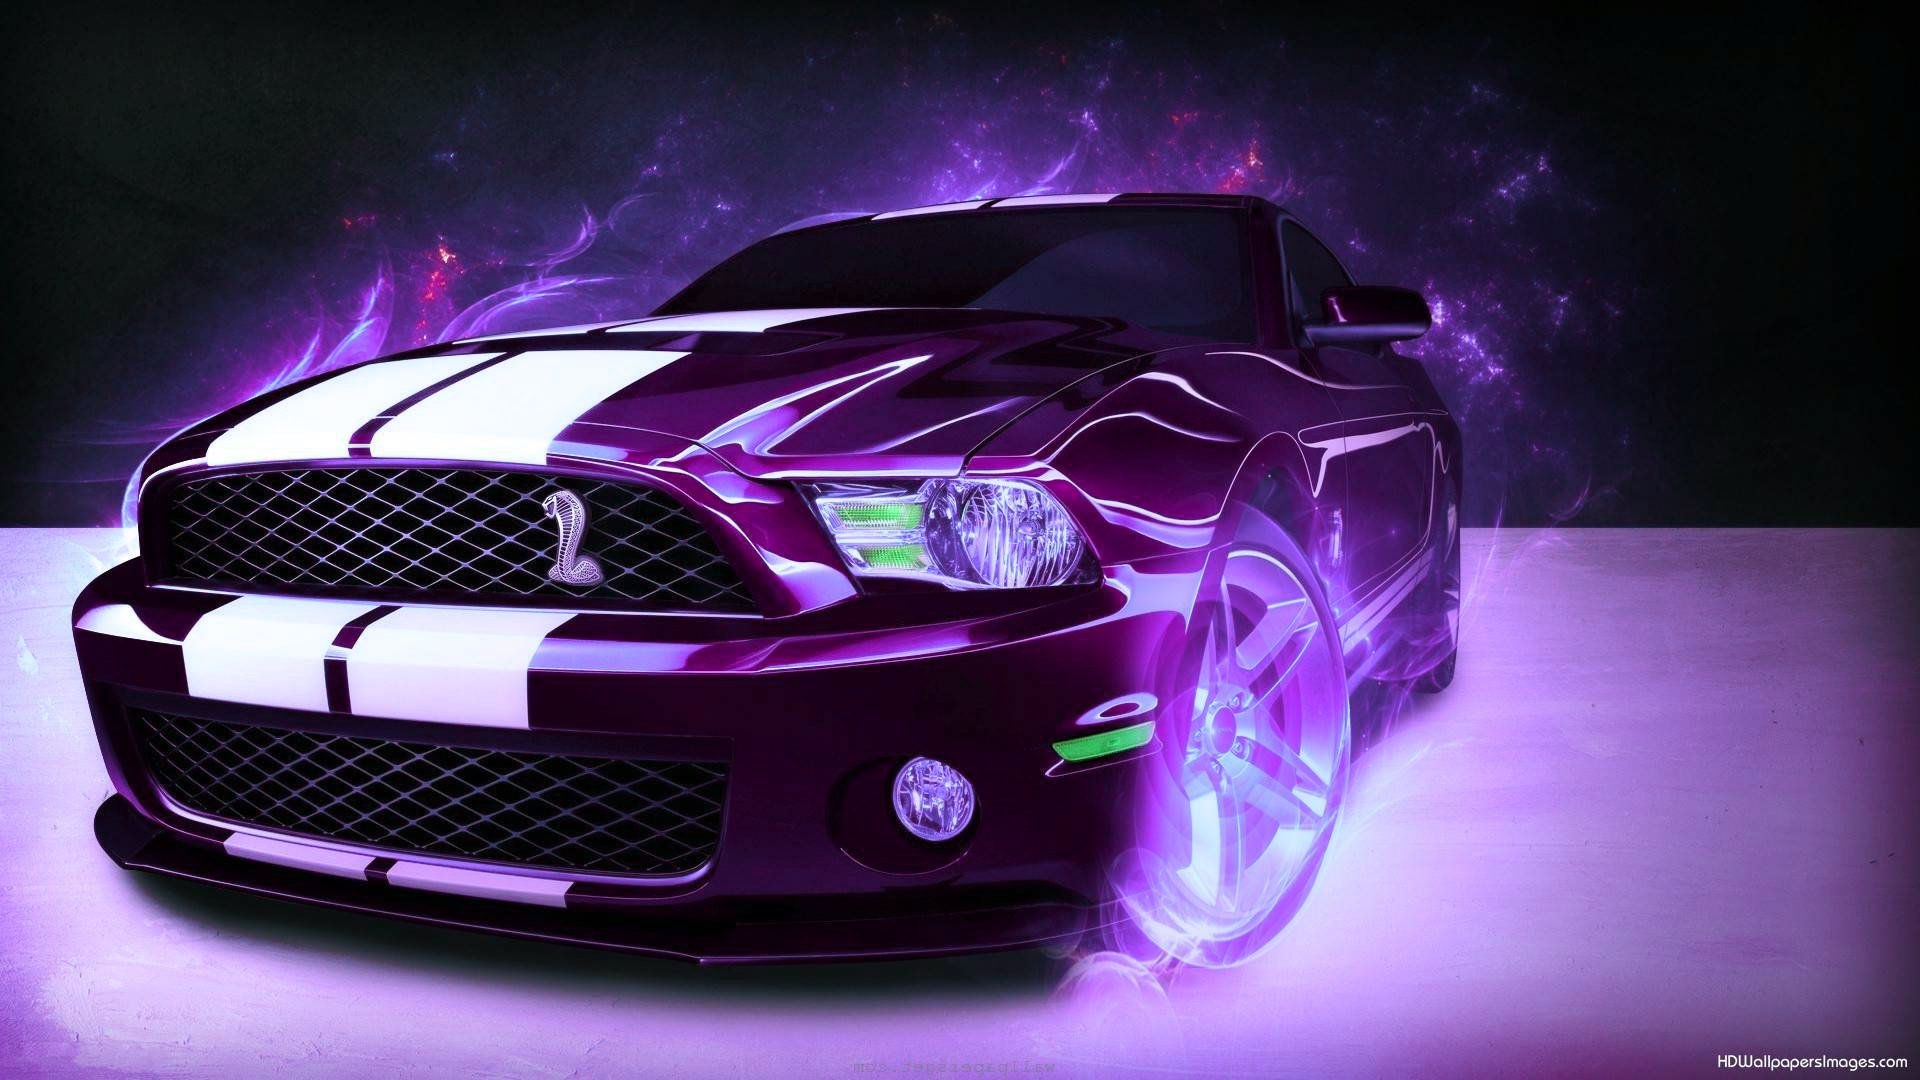 6400 download hd purple ford mustang 2014 wallpaperg 19201080 black ford mustang wallpaper hd ford f black logo at cars wallpapers on imageion picture voltagebd Images